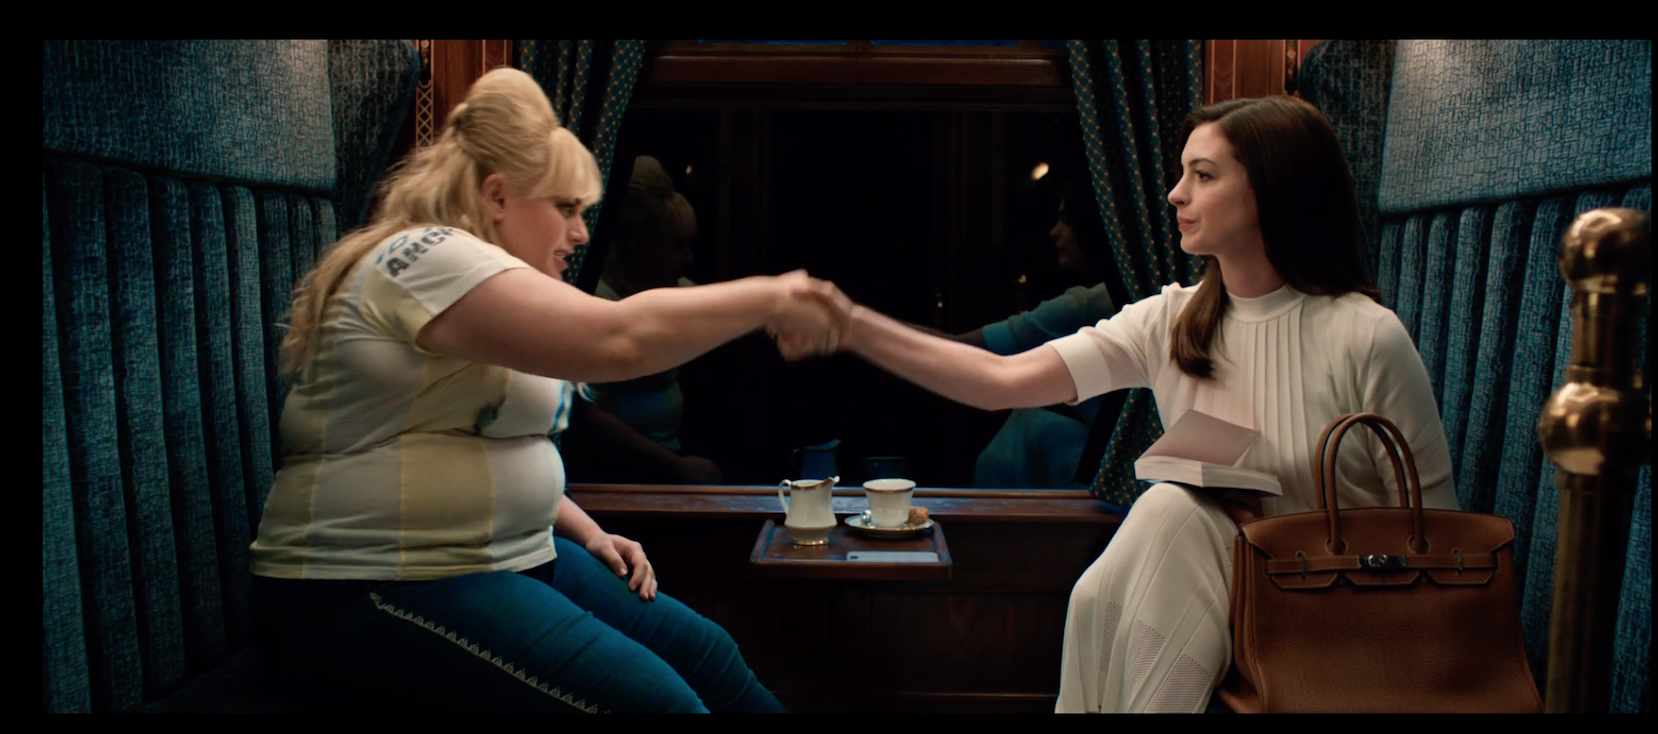 Watch The New Trailer For The Hustle Starring Anne Hathaway And Rebel Wilson Playbill